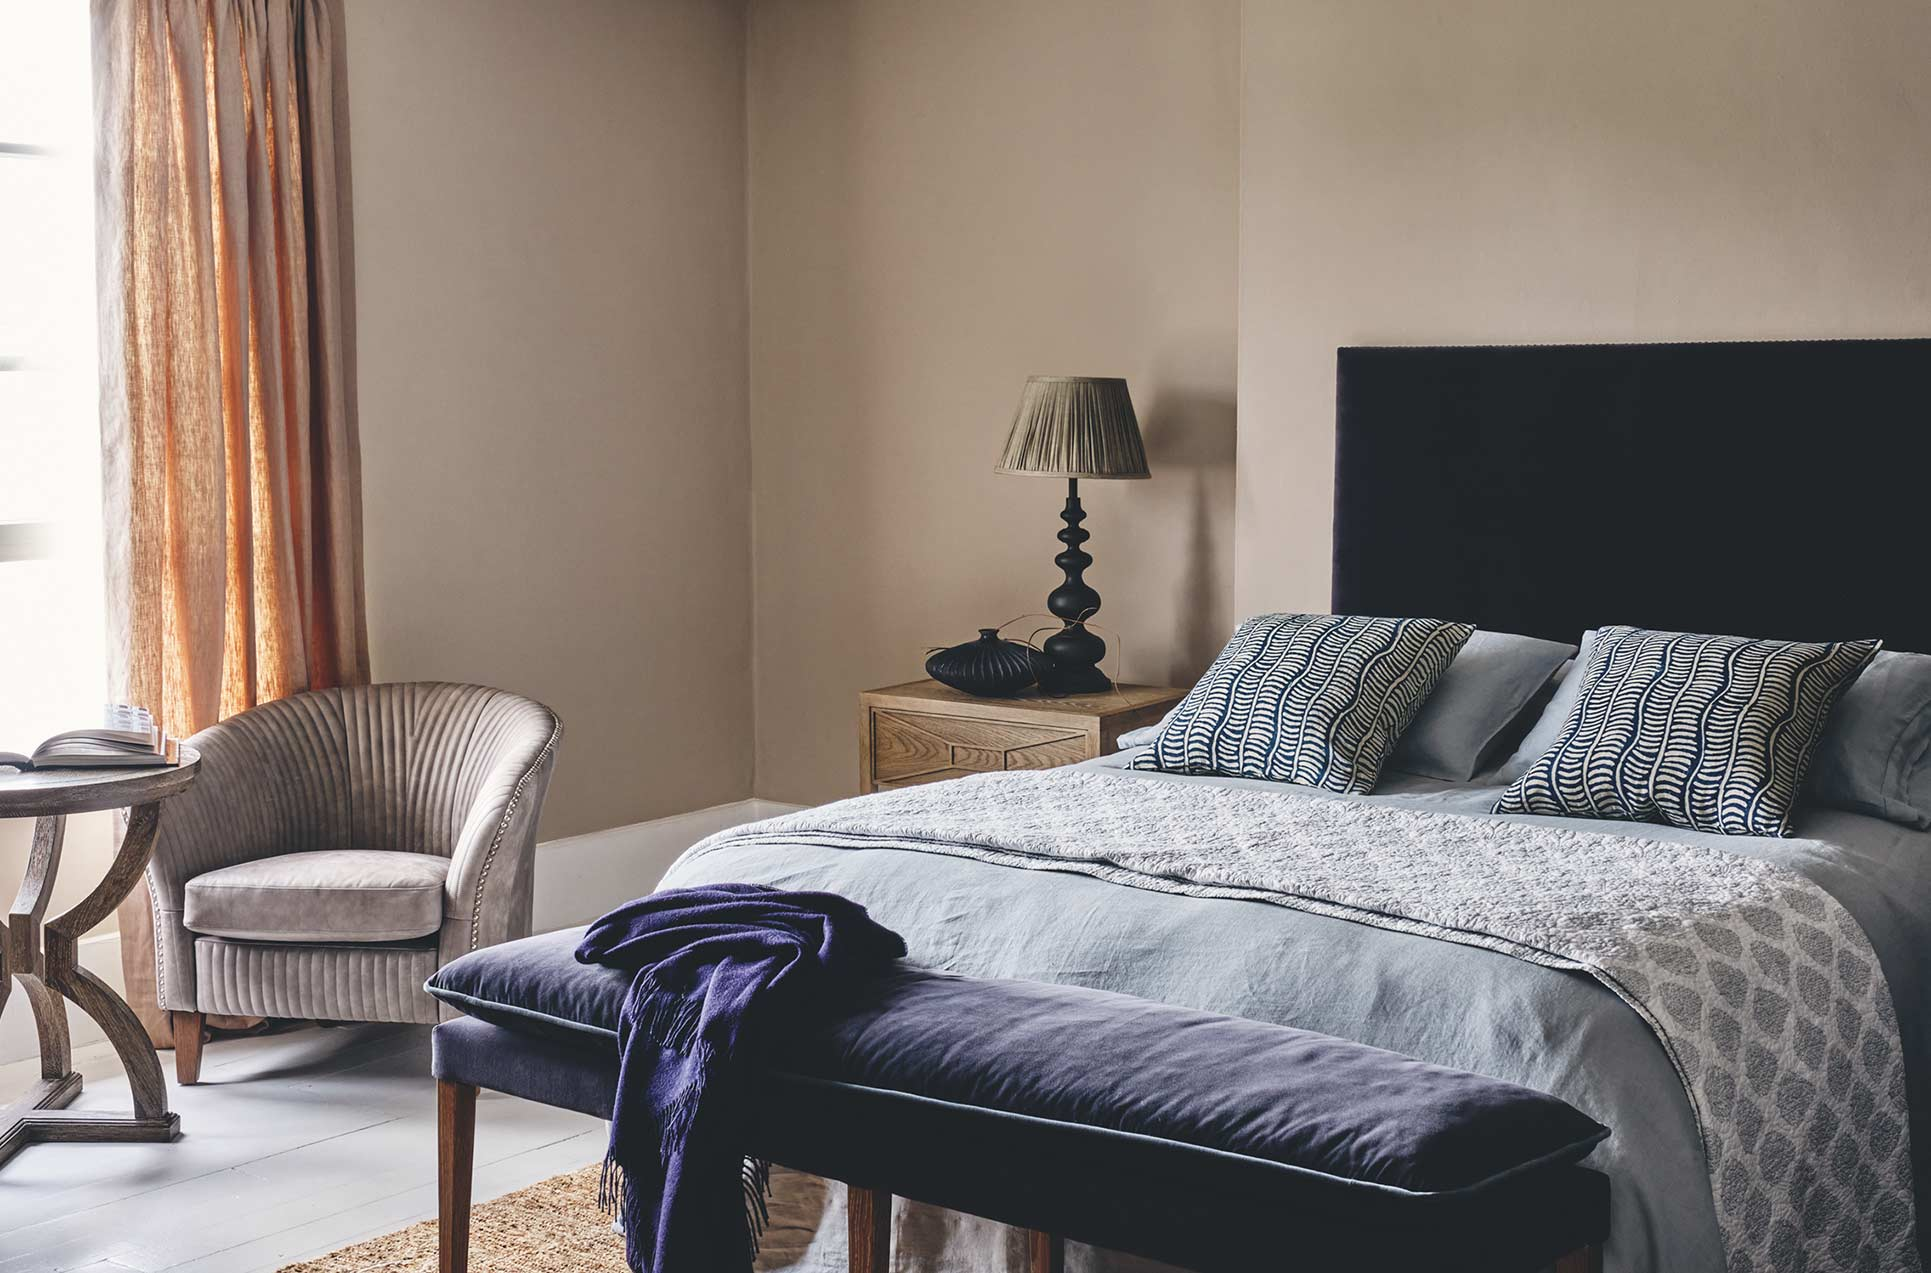 A blue-themed bedroom with a black table lamp, blue bed and a navy blue bench seat